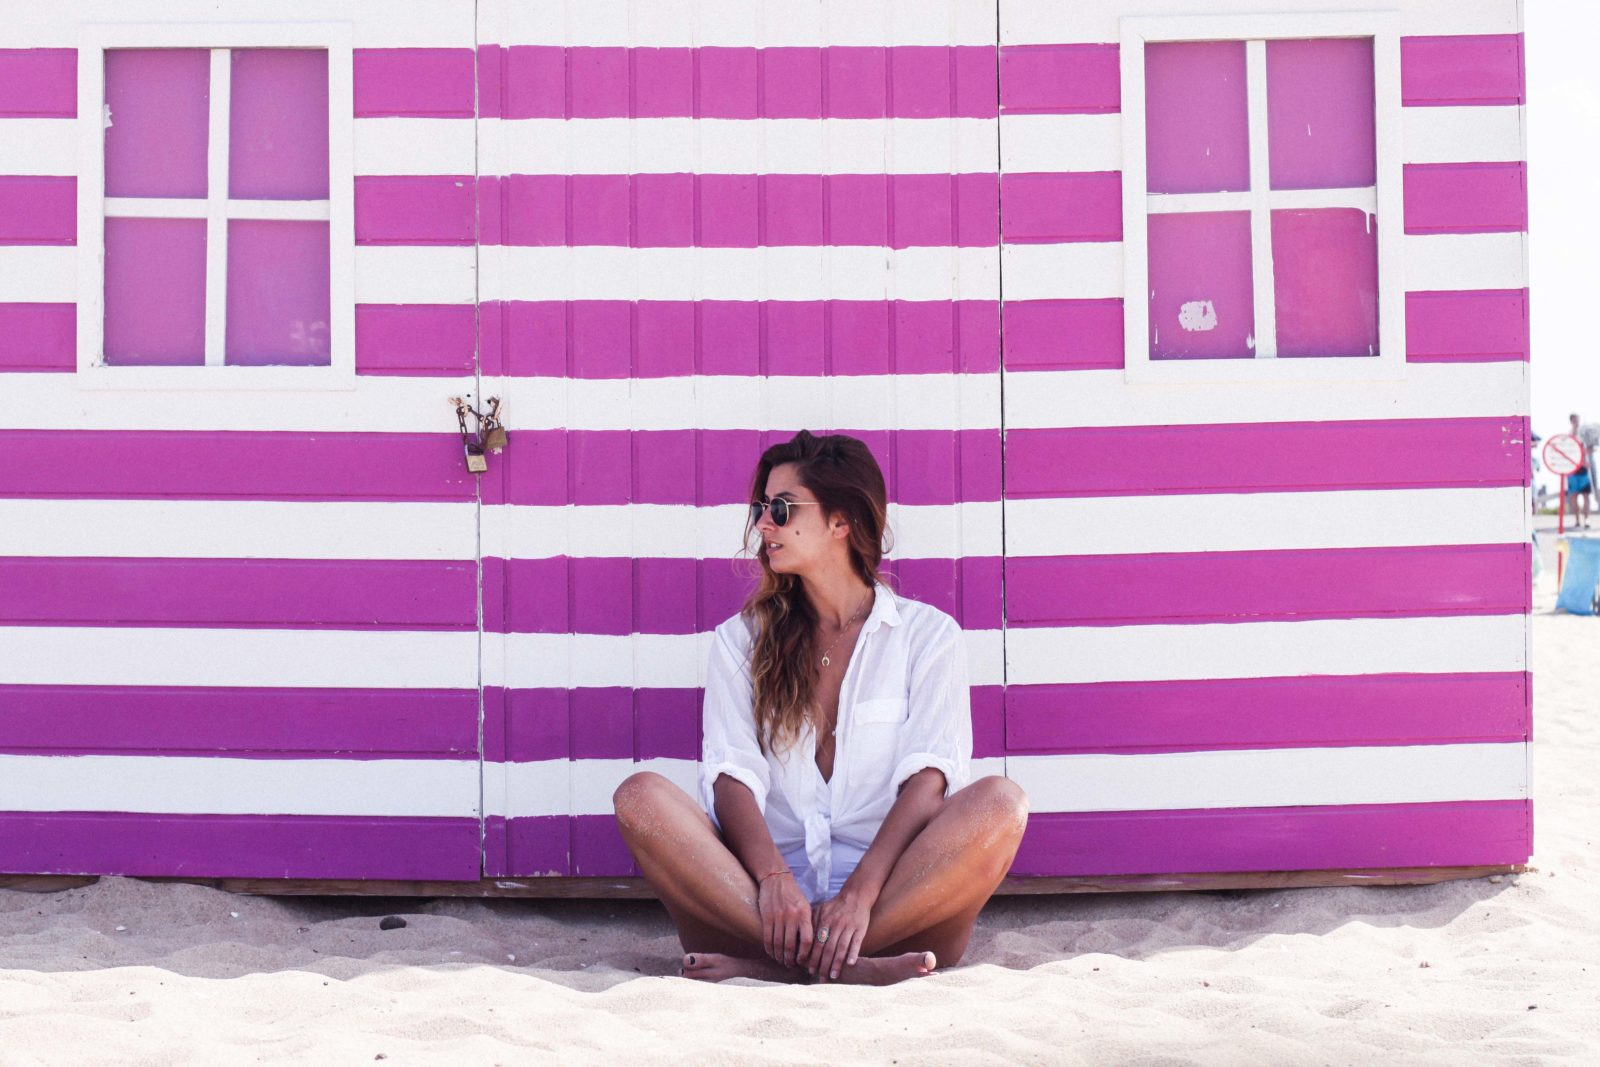 swimsuit_white_shirt_beach_comporta_carvalho_portugal_alentejo_trip-36